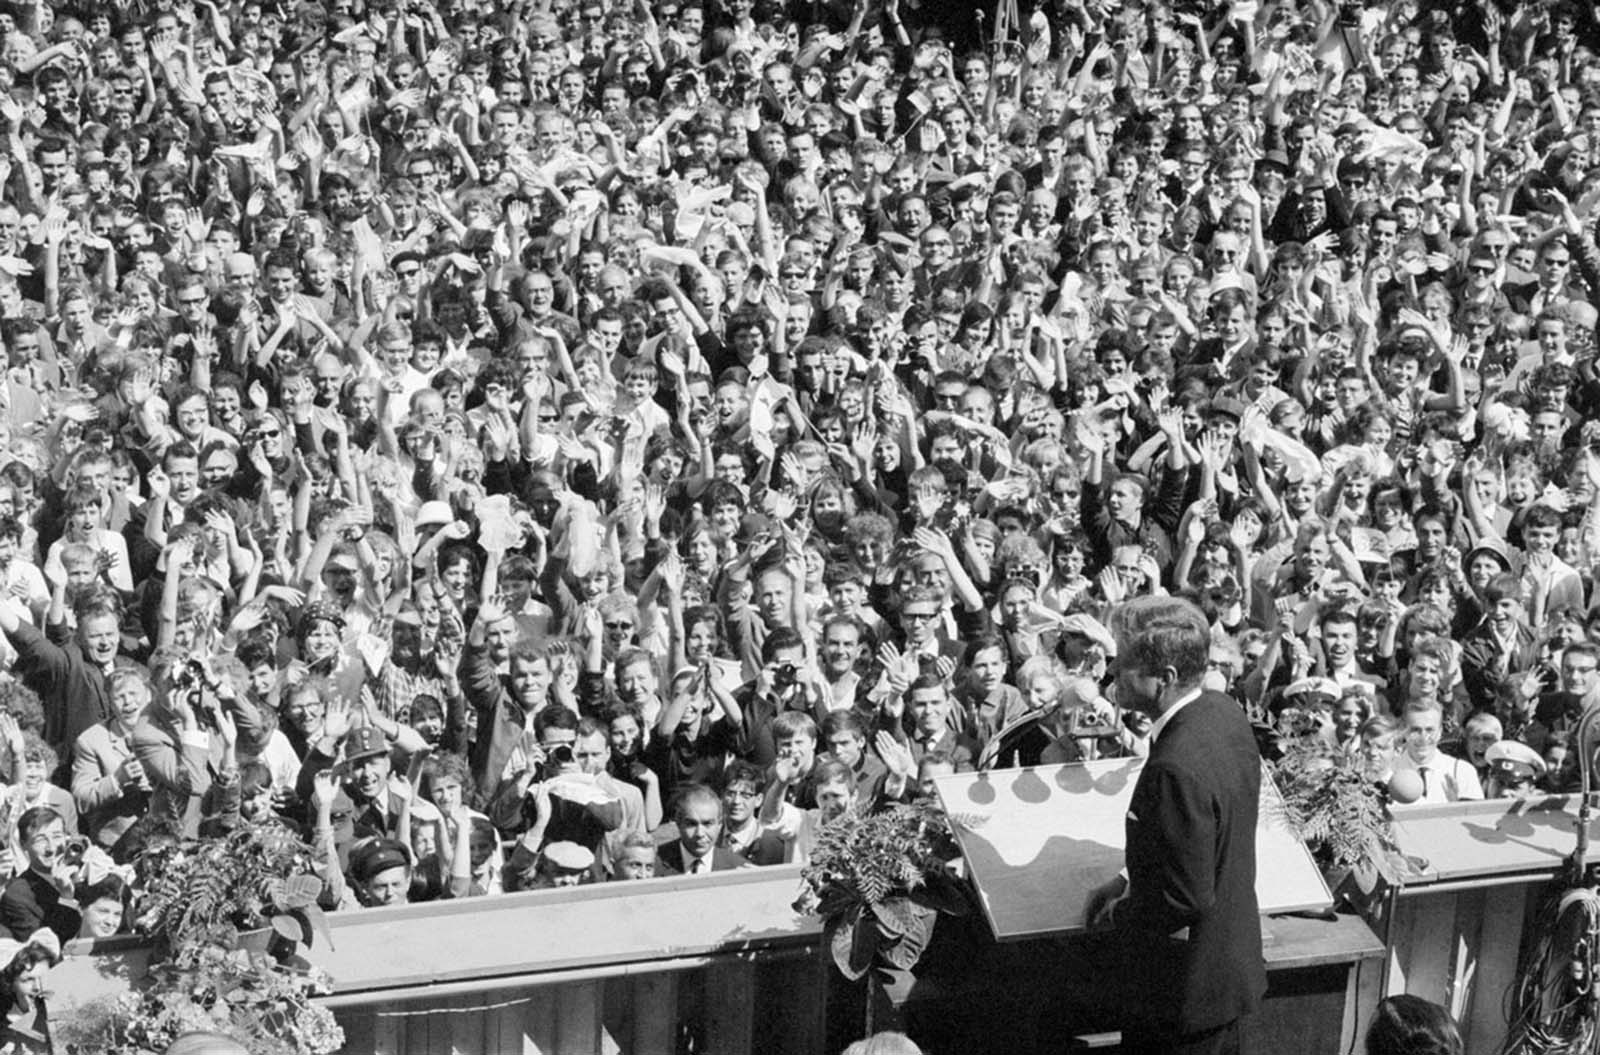 President John F. Kennedy stands before a huge crowd in West Berlin on June 26, 1963. Here he made his famous declaration: